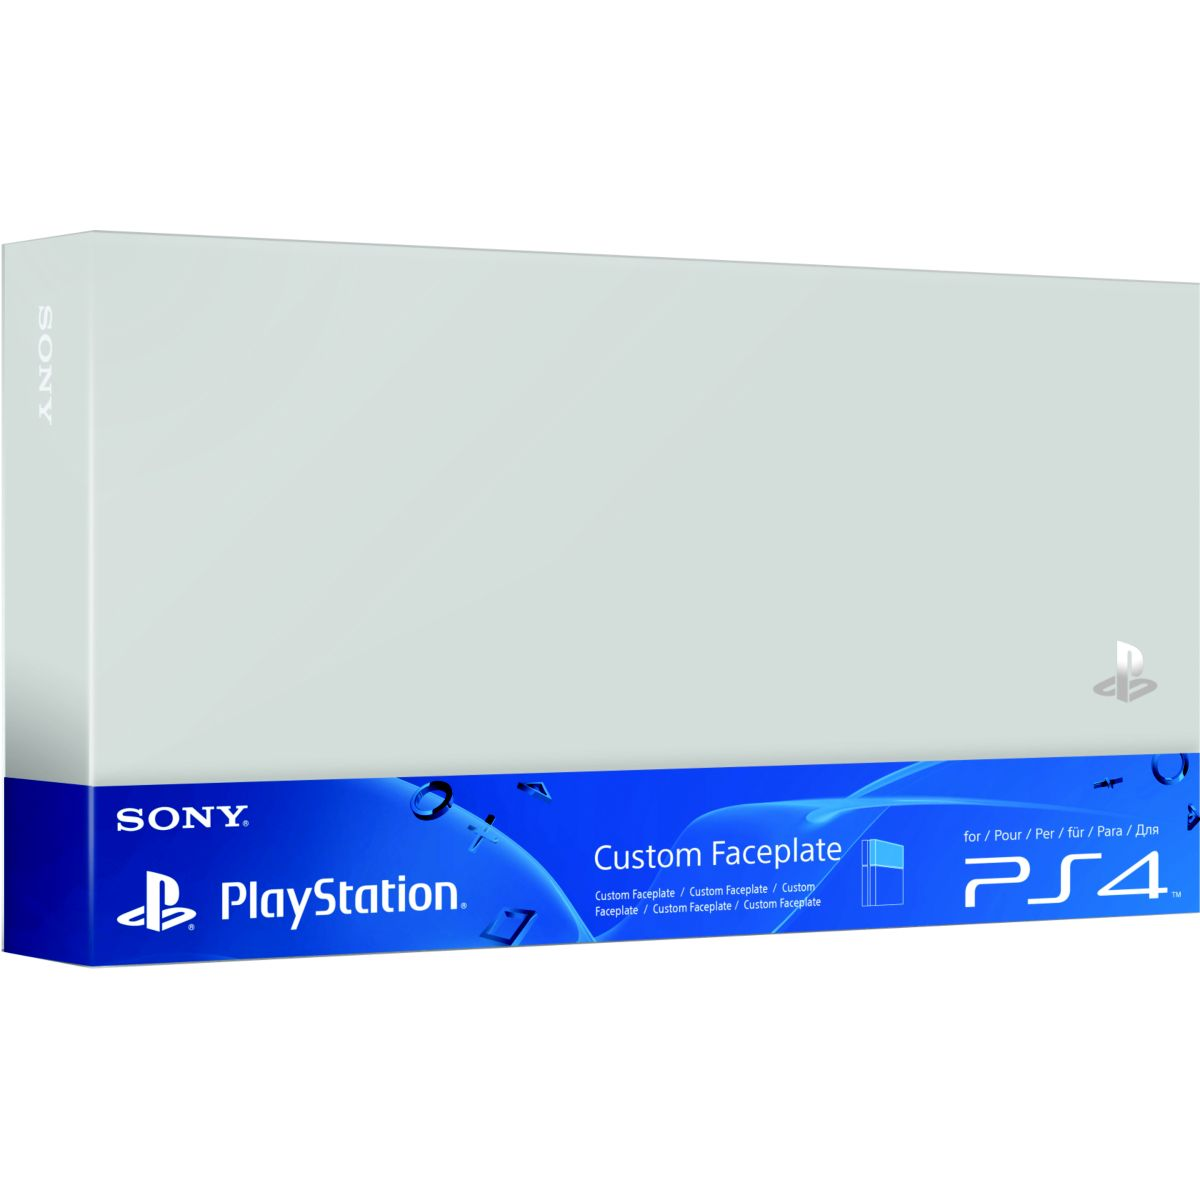 ACC. SONY Custom Faceplate Silver